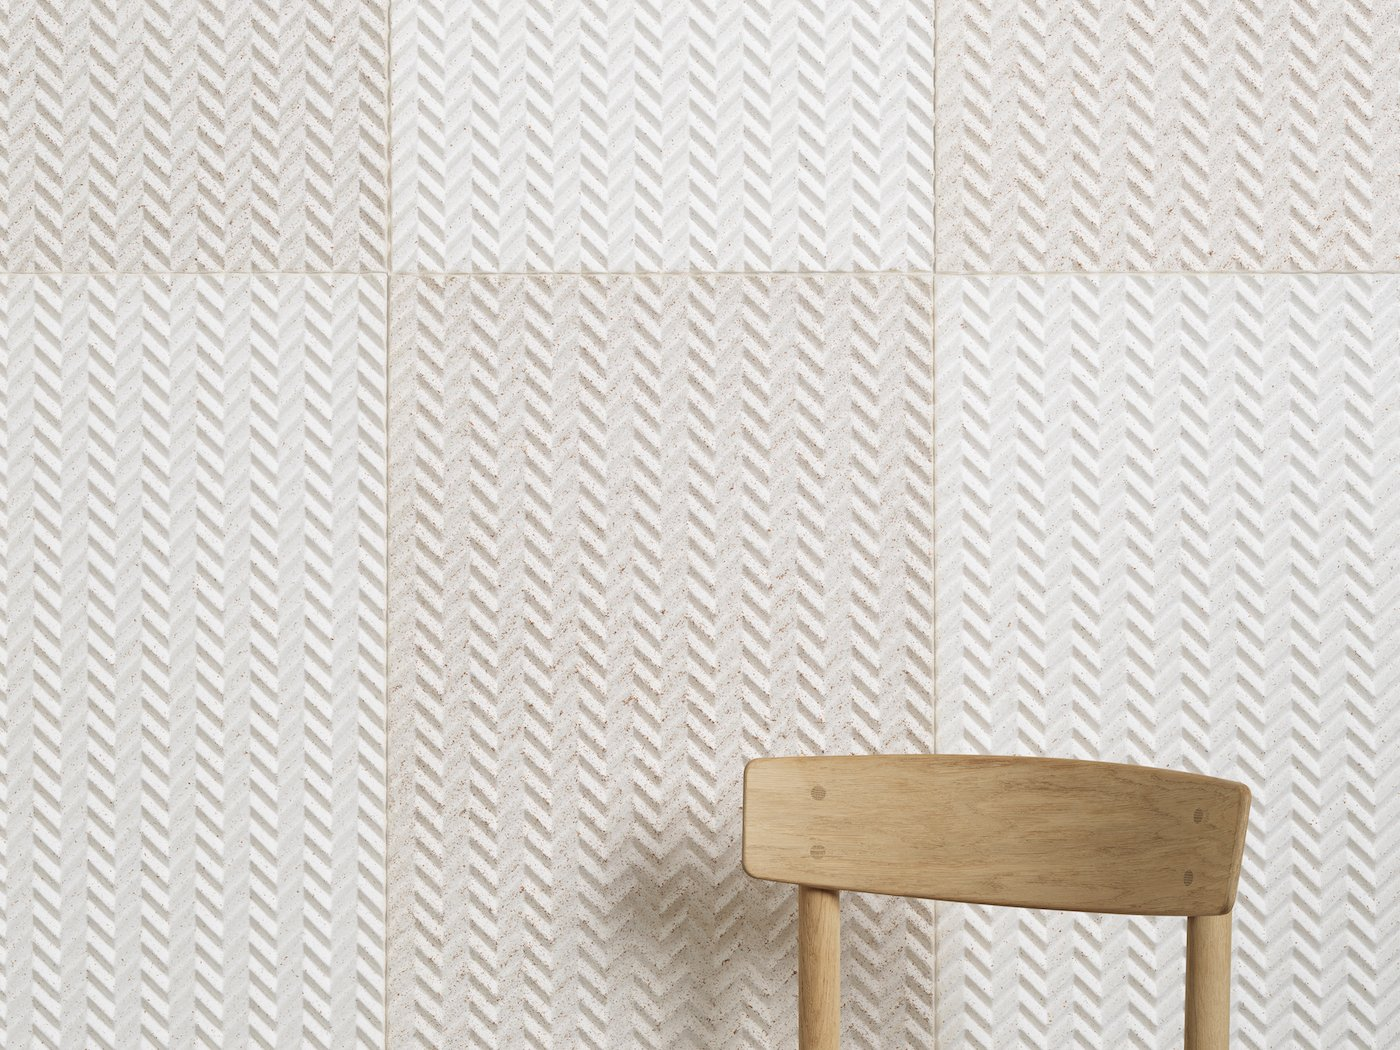 Eco Edition_Form Us With Love_Baux Acoustic Pulp_Sustainable architecture interiors products 6